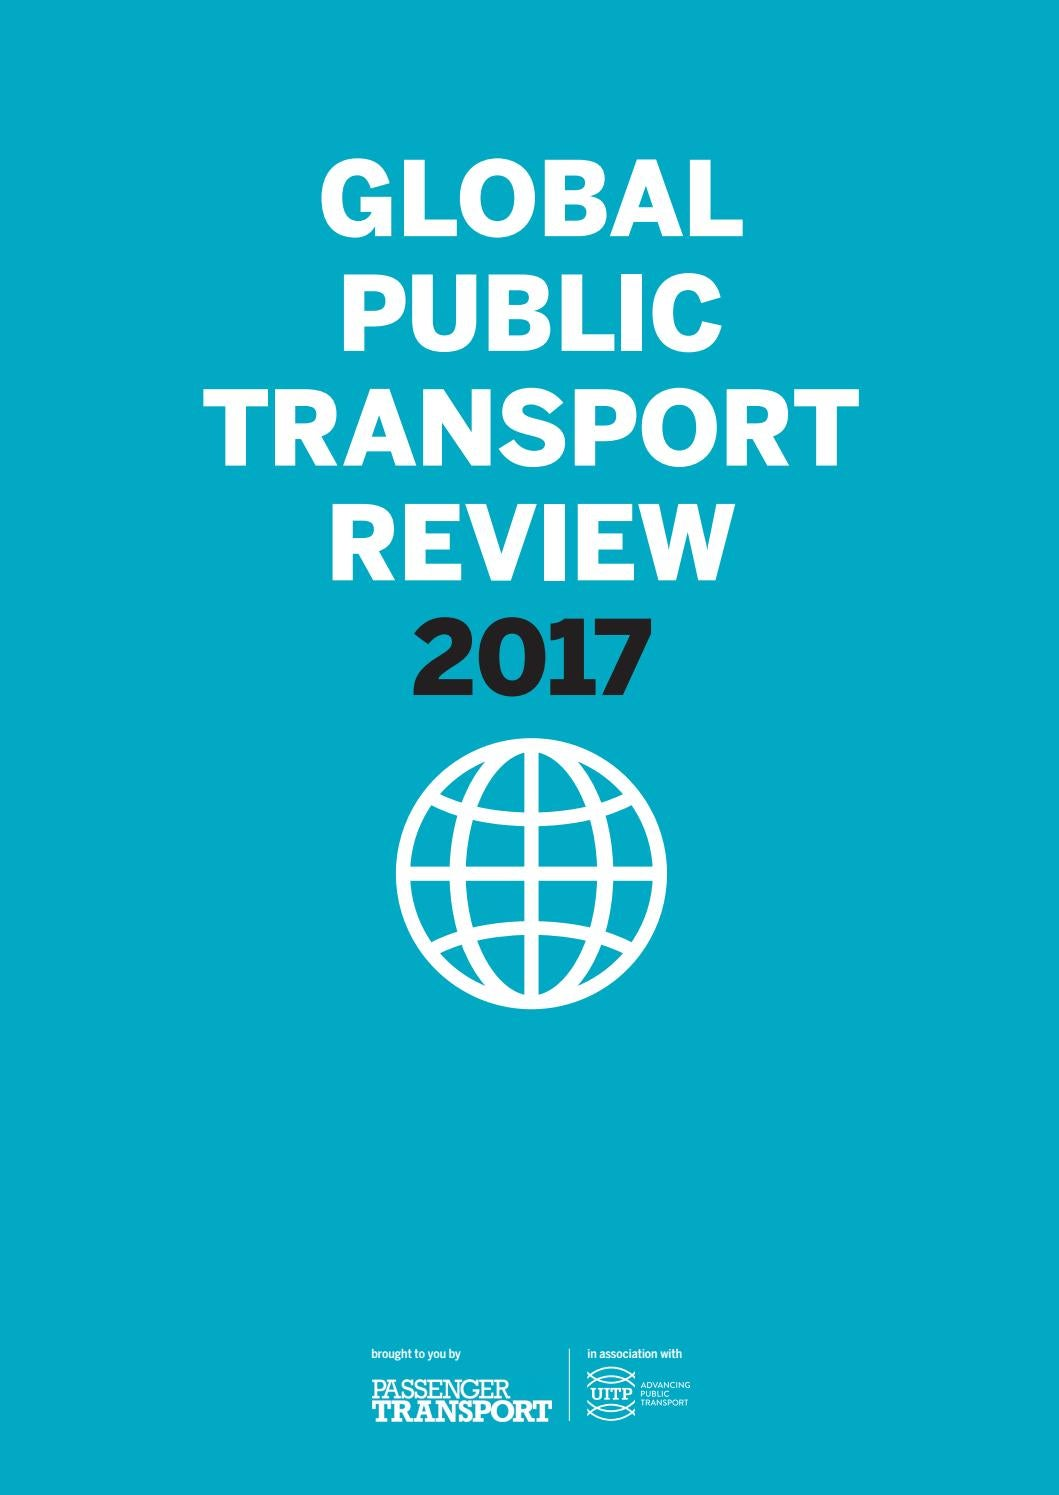 Transport bank: reviews of investors and employees. Rating and reliability of the bank Transport